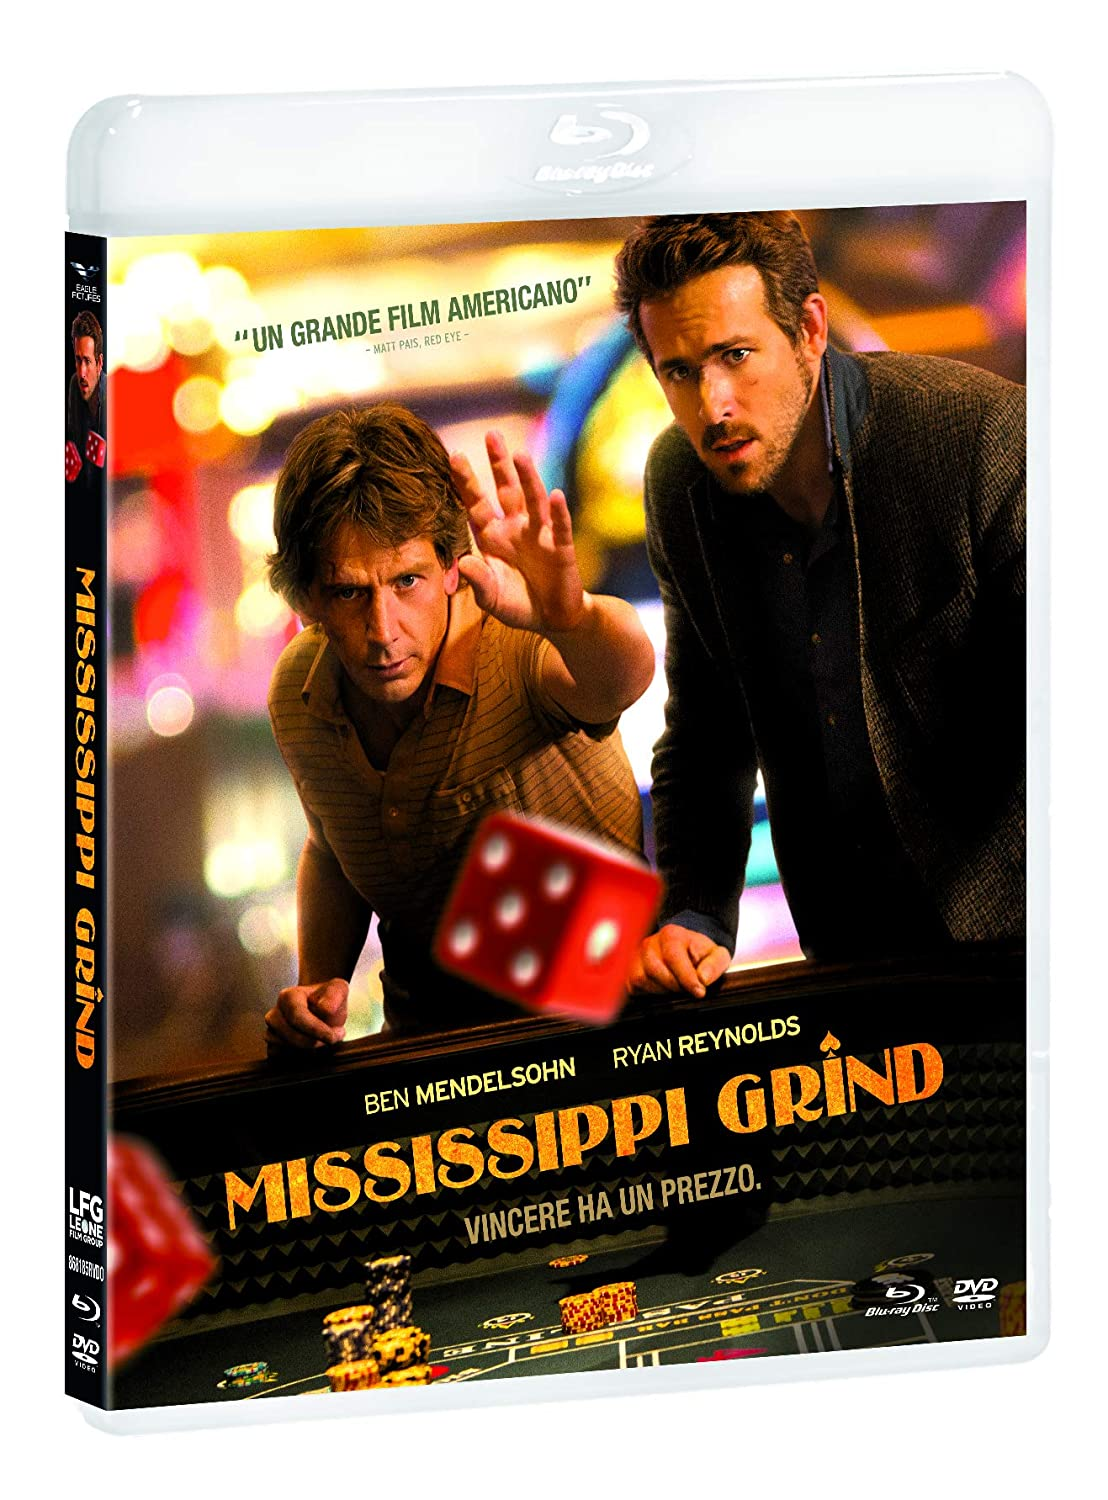 MISSISSIPPI GRIND (BLU-RAY+DVD)